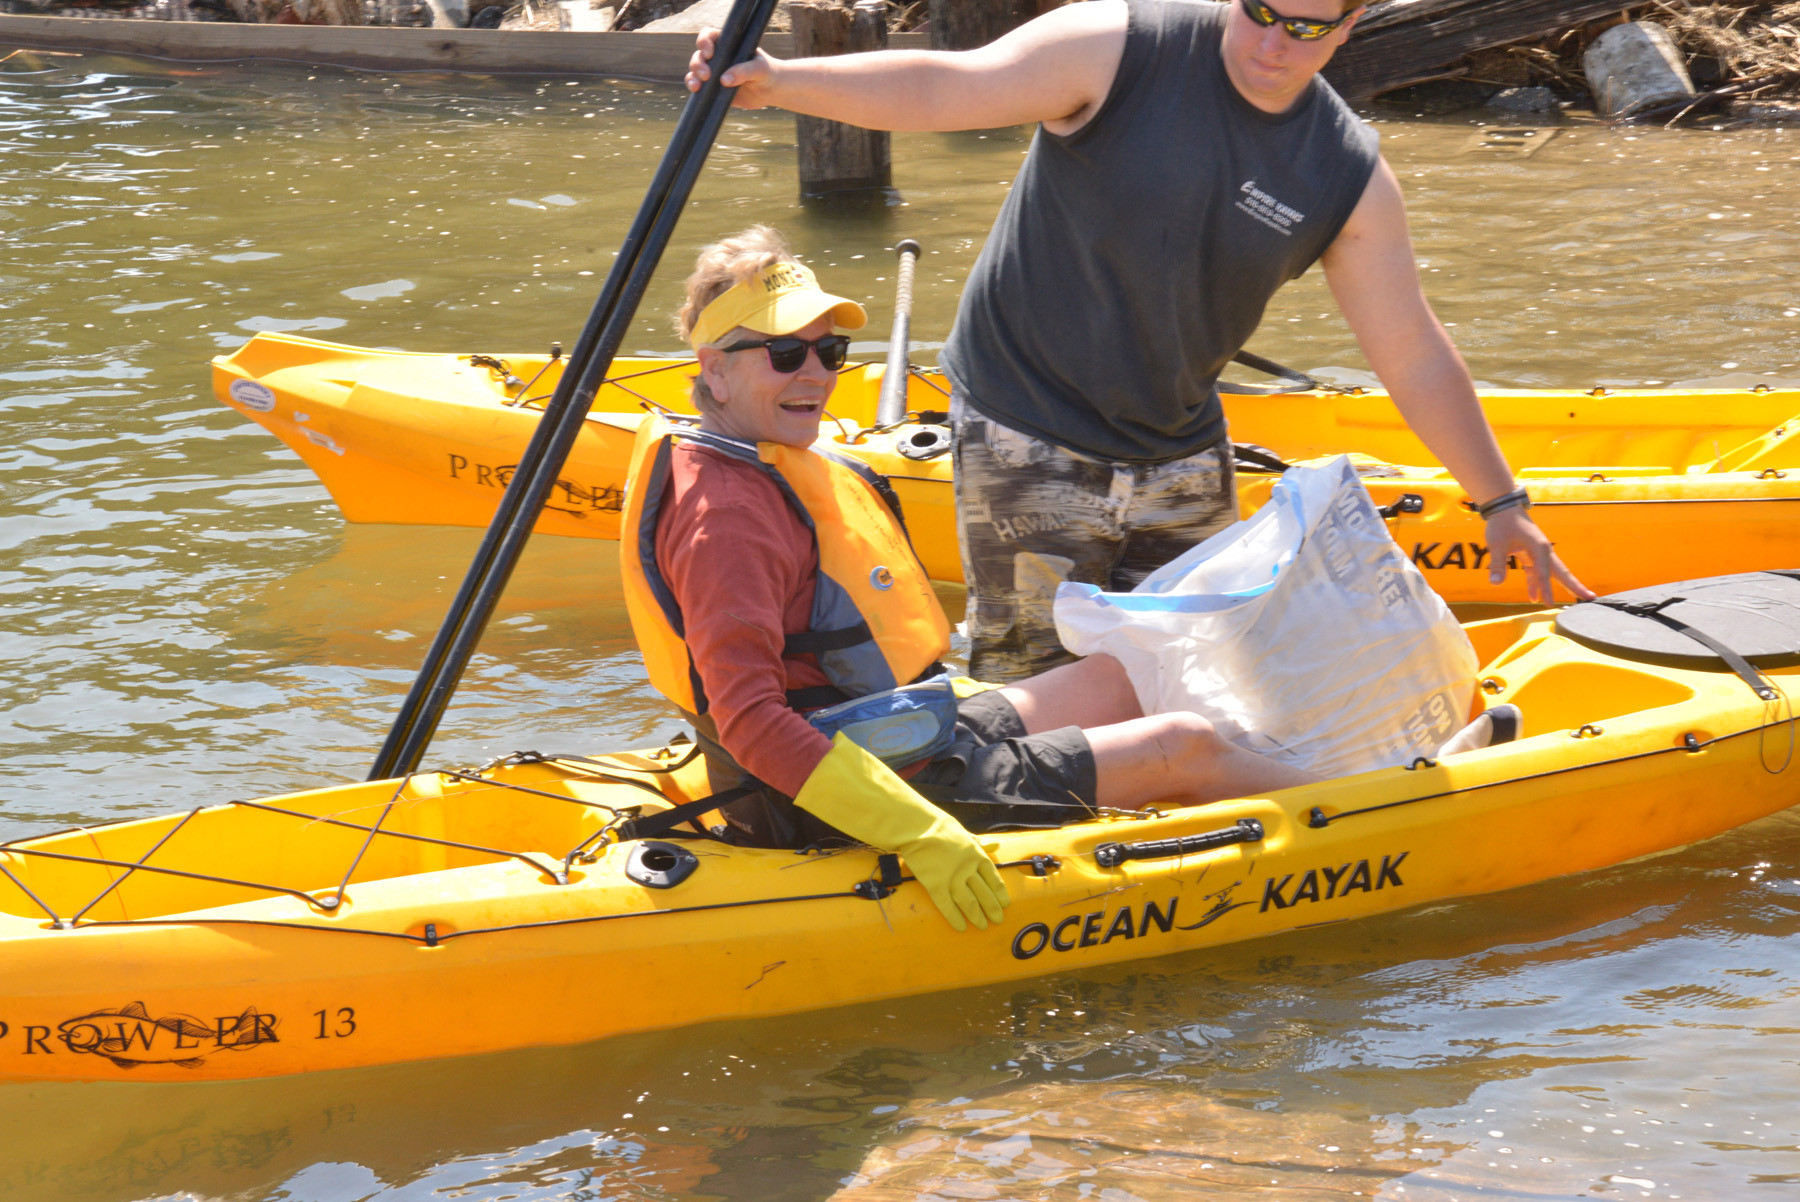 Gail Carlin at Empire Kayak in Island Park on Earth Day, Participants paddled free if they picked up detritus from water as they went.